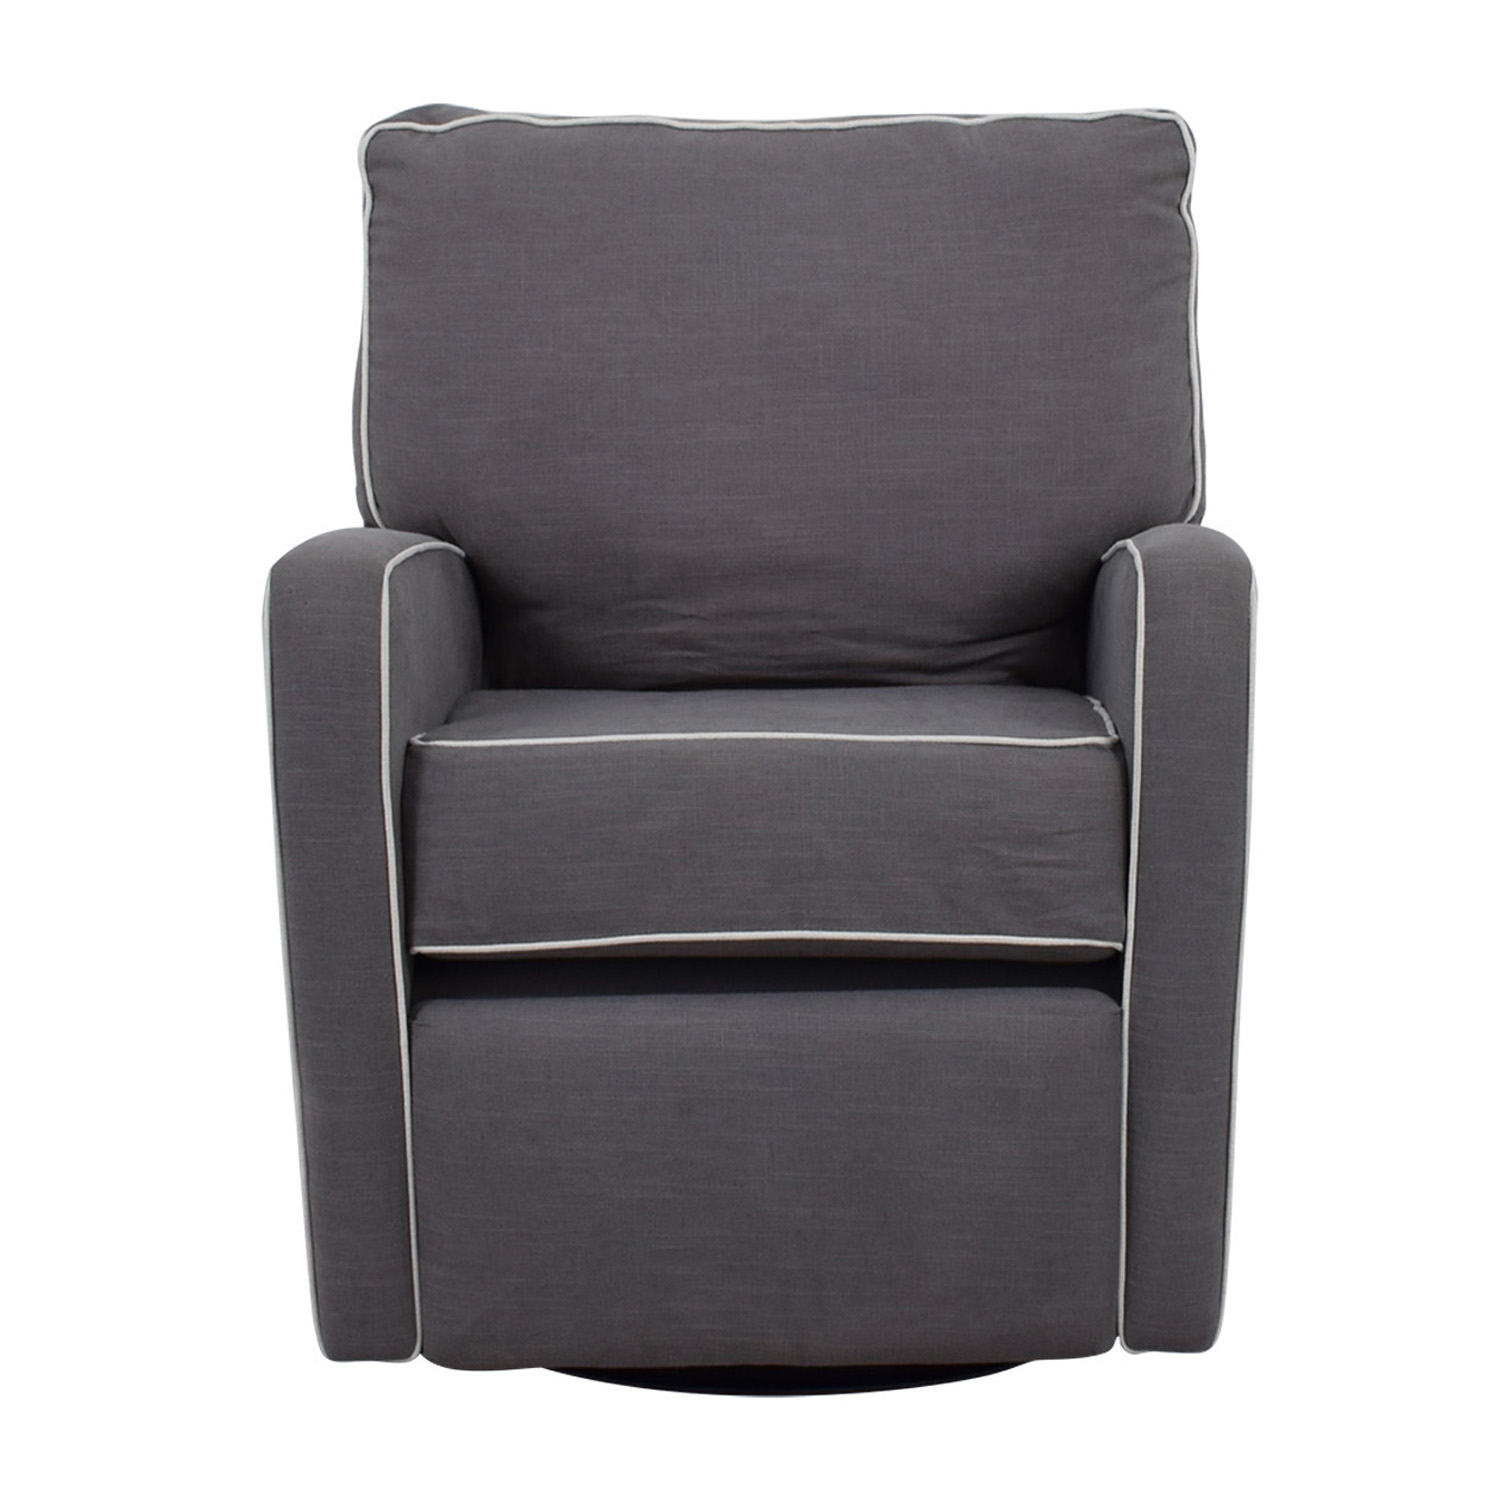 shop Grey with White Trim Rocking Chair Accent Chairs